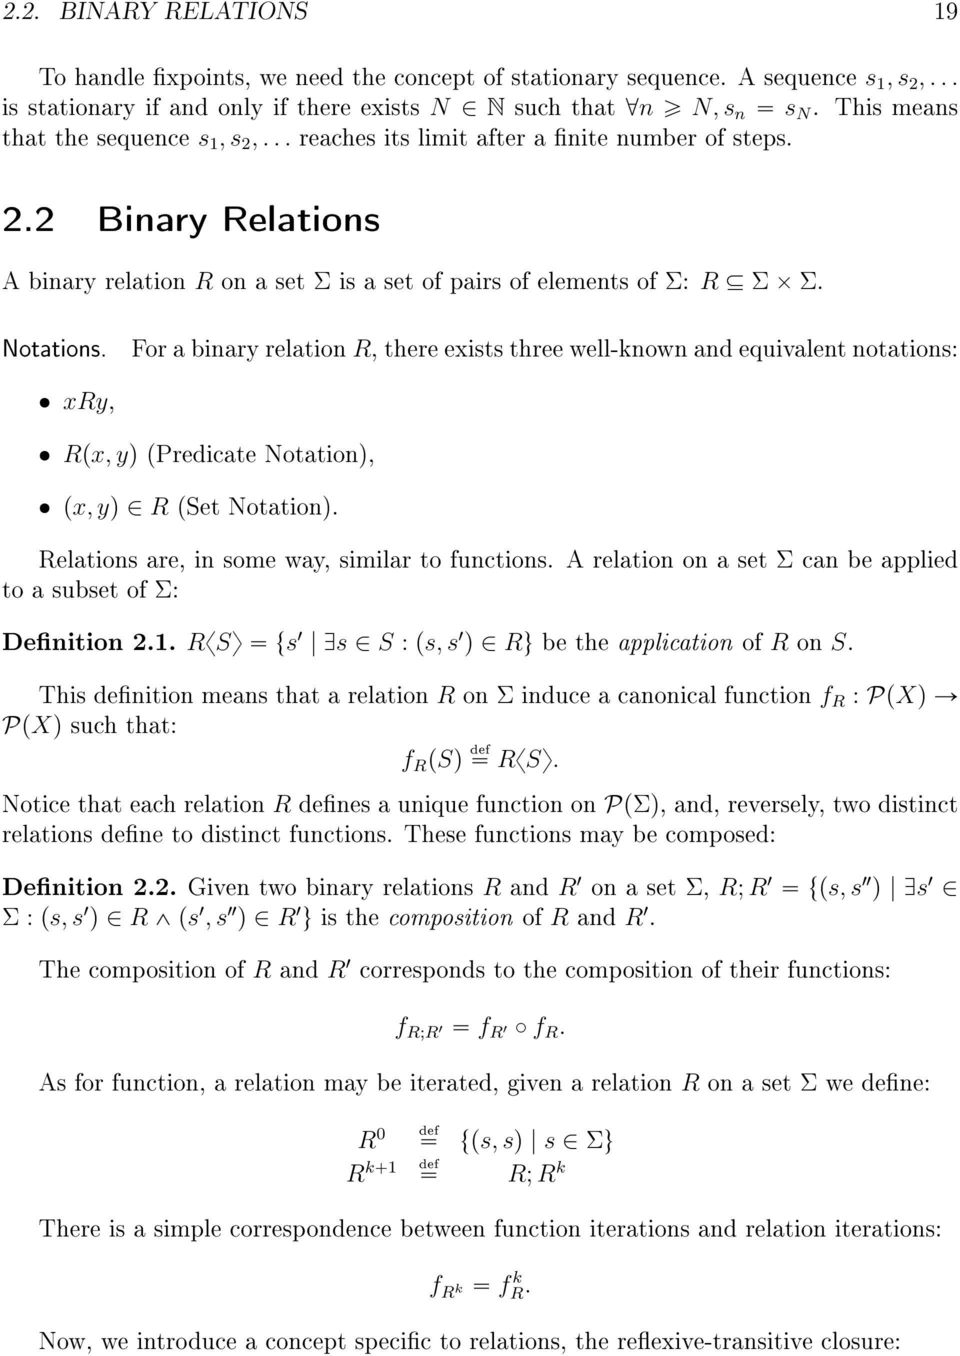 For a binary relation R, there exists three well-known and equivalent notations: ˆ xry, ˆ Rpx, yq (Predicate Notation), ˆ px, yq R (Set Notation). Relations are, in some way, similar to functions.